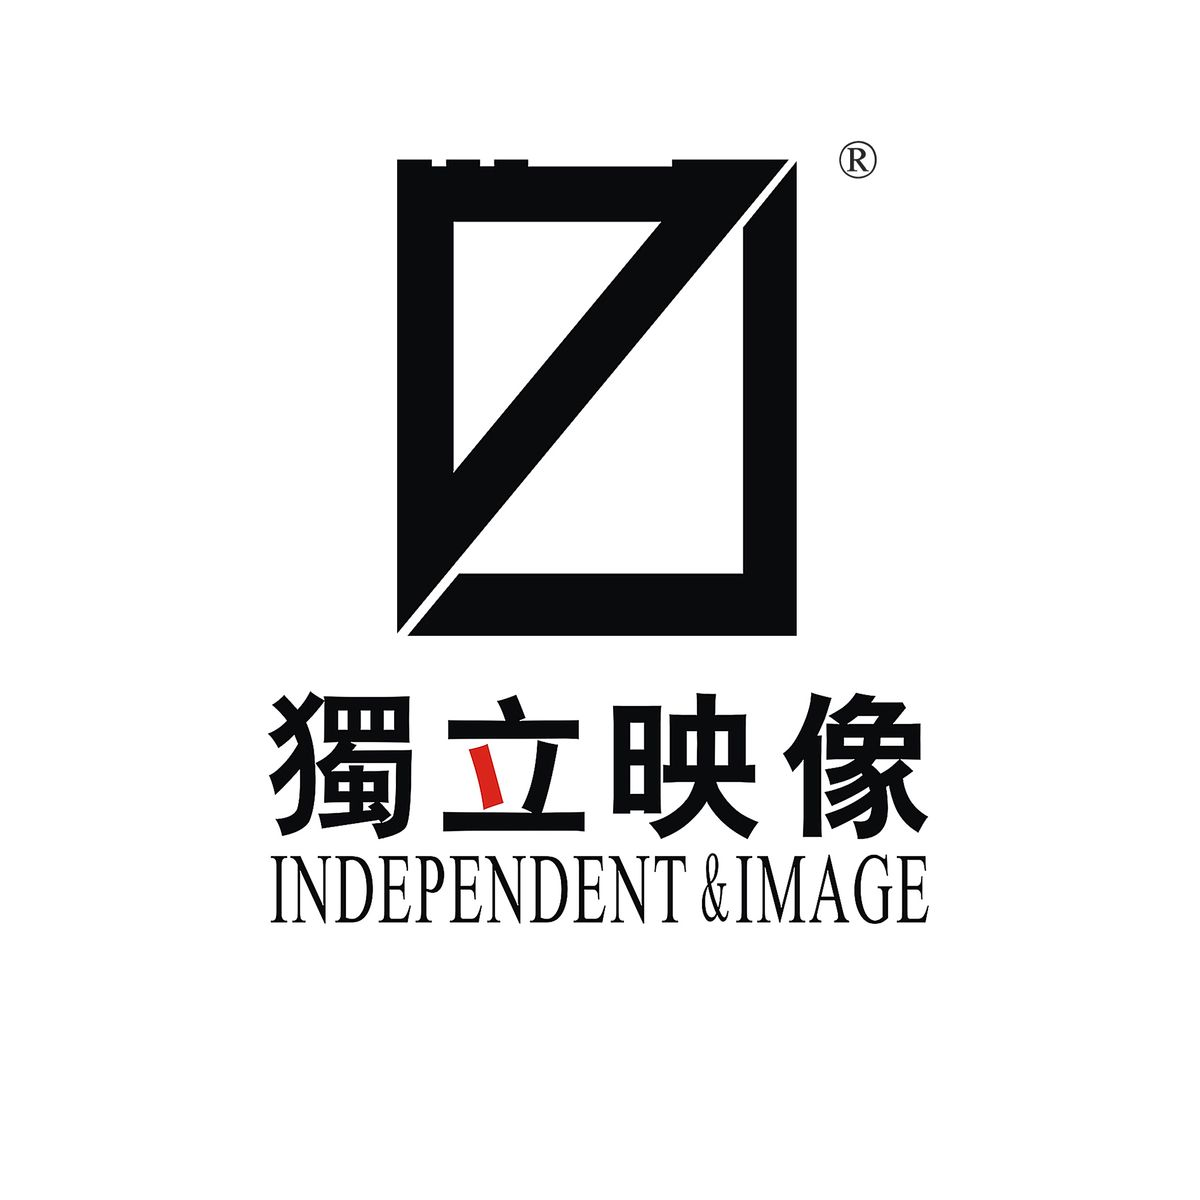 Independent & Image Art Space